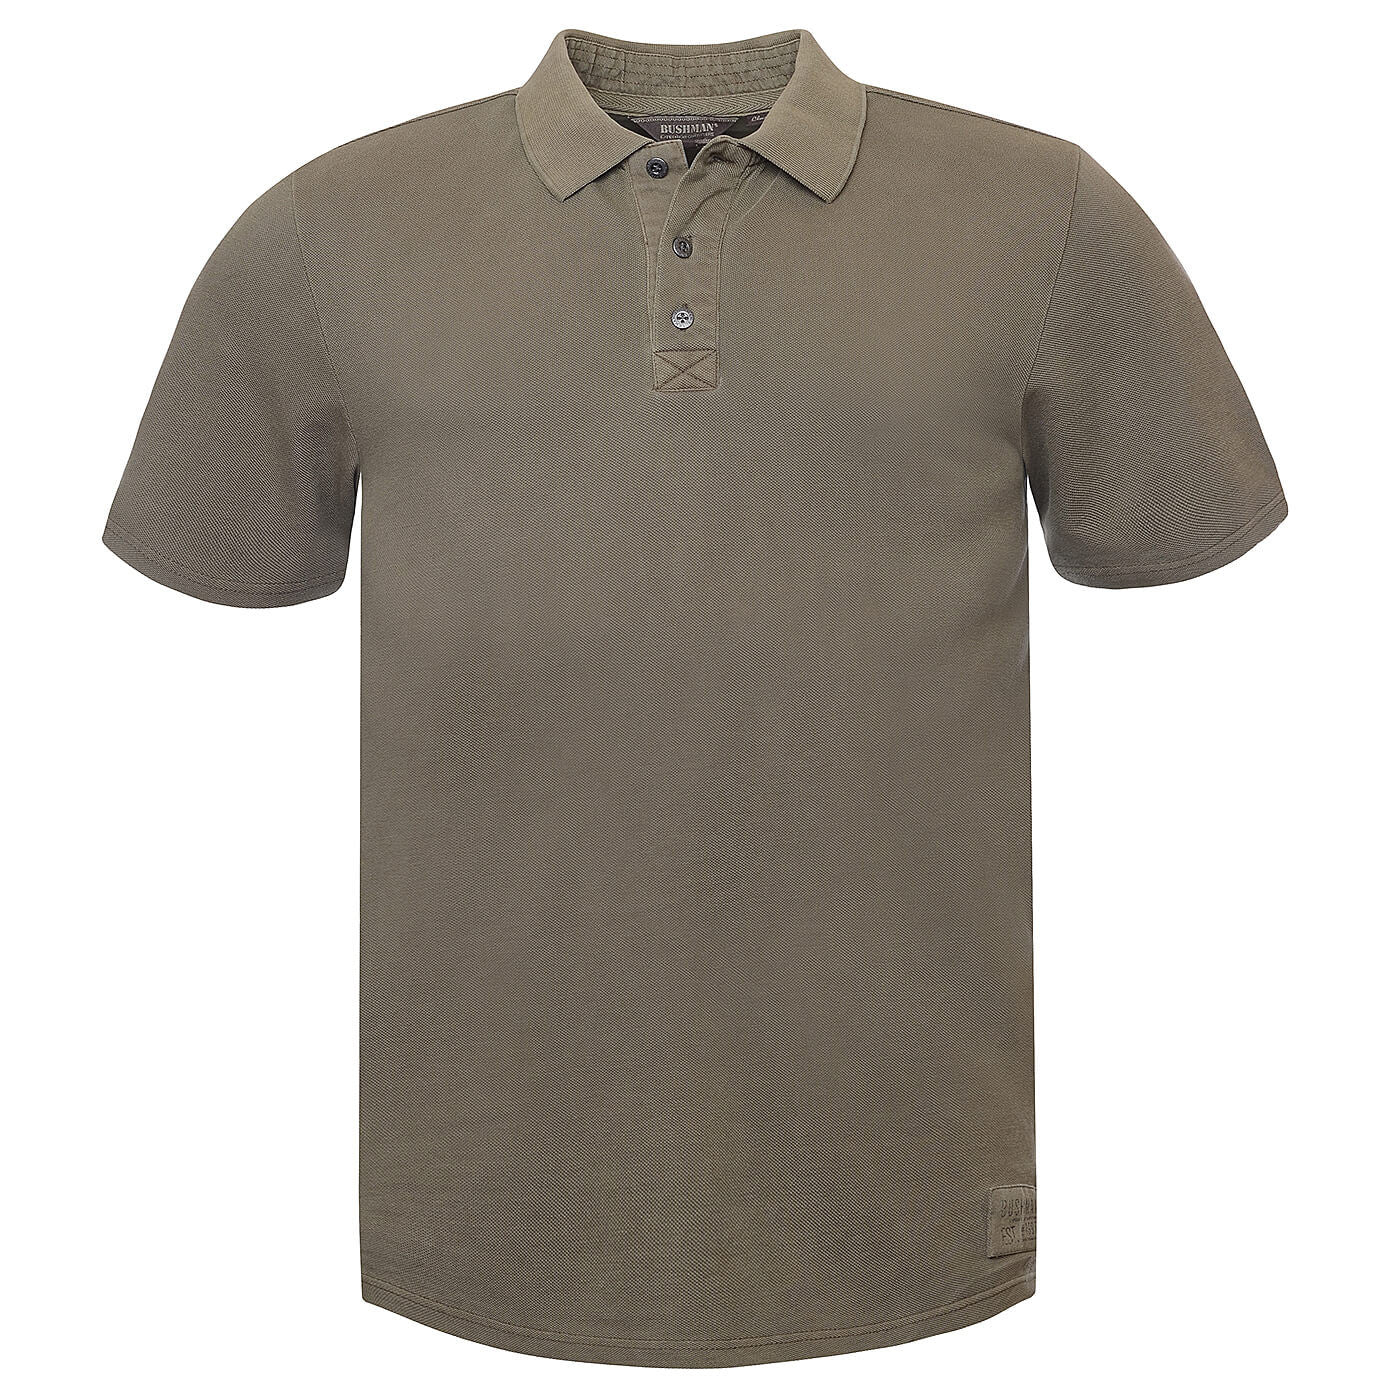 BUSHMANSHOP CORNWALL MEN'S OLIVE/SANDY BROWN COTTON POLO SHORT SLEEVE T-SHIRT